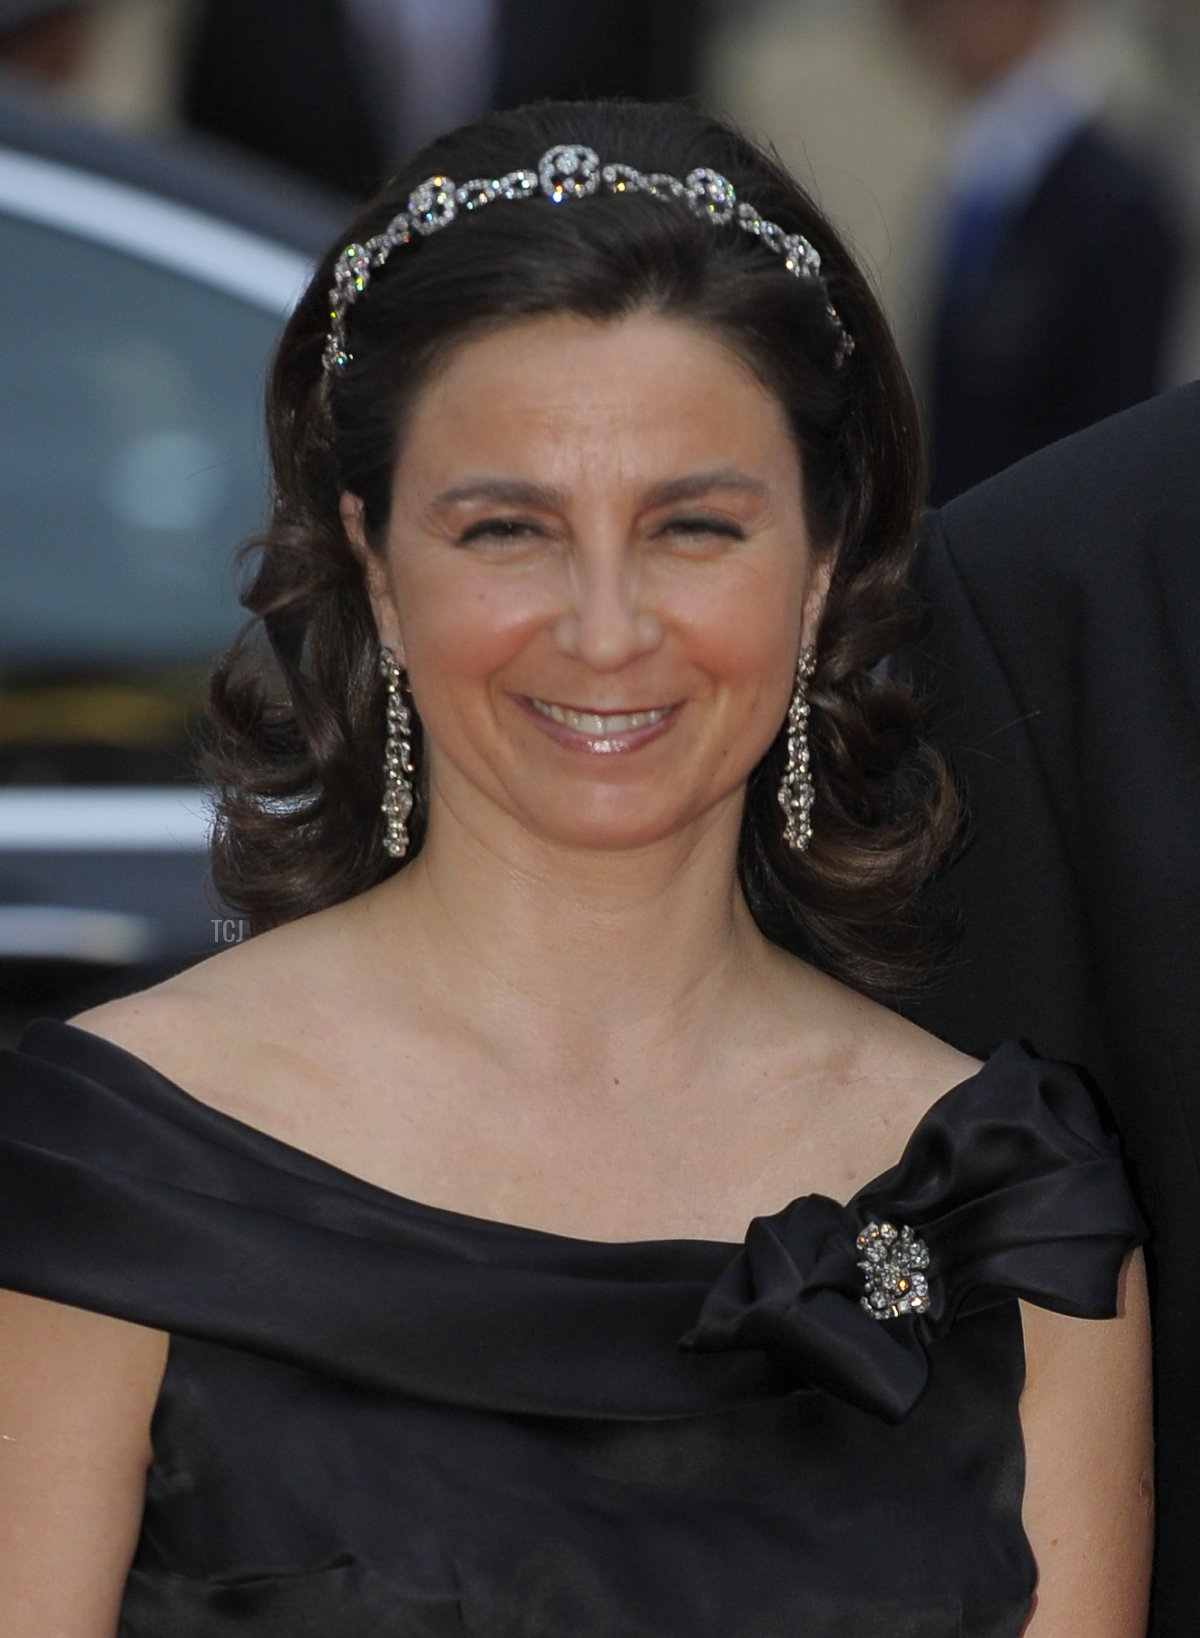 Portugal's Duke of Braganza Duarte Pio and Isabel de Heredia arrive for a dinner after the religious wedding ceremony of Princess Charlene of Monaco and Prince Albert II of Monaco on July 2, 2011 in Monaco